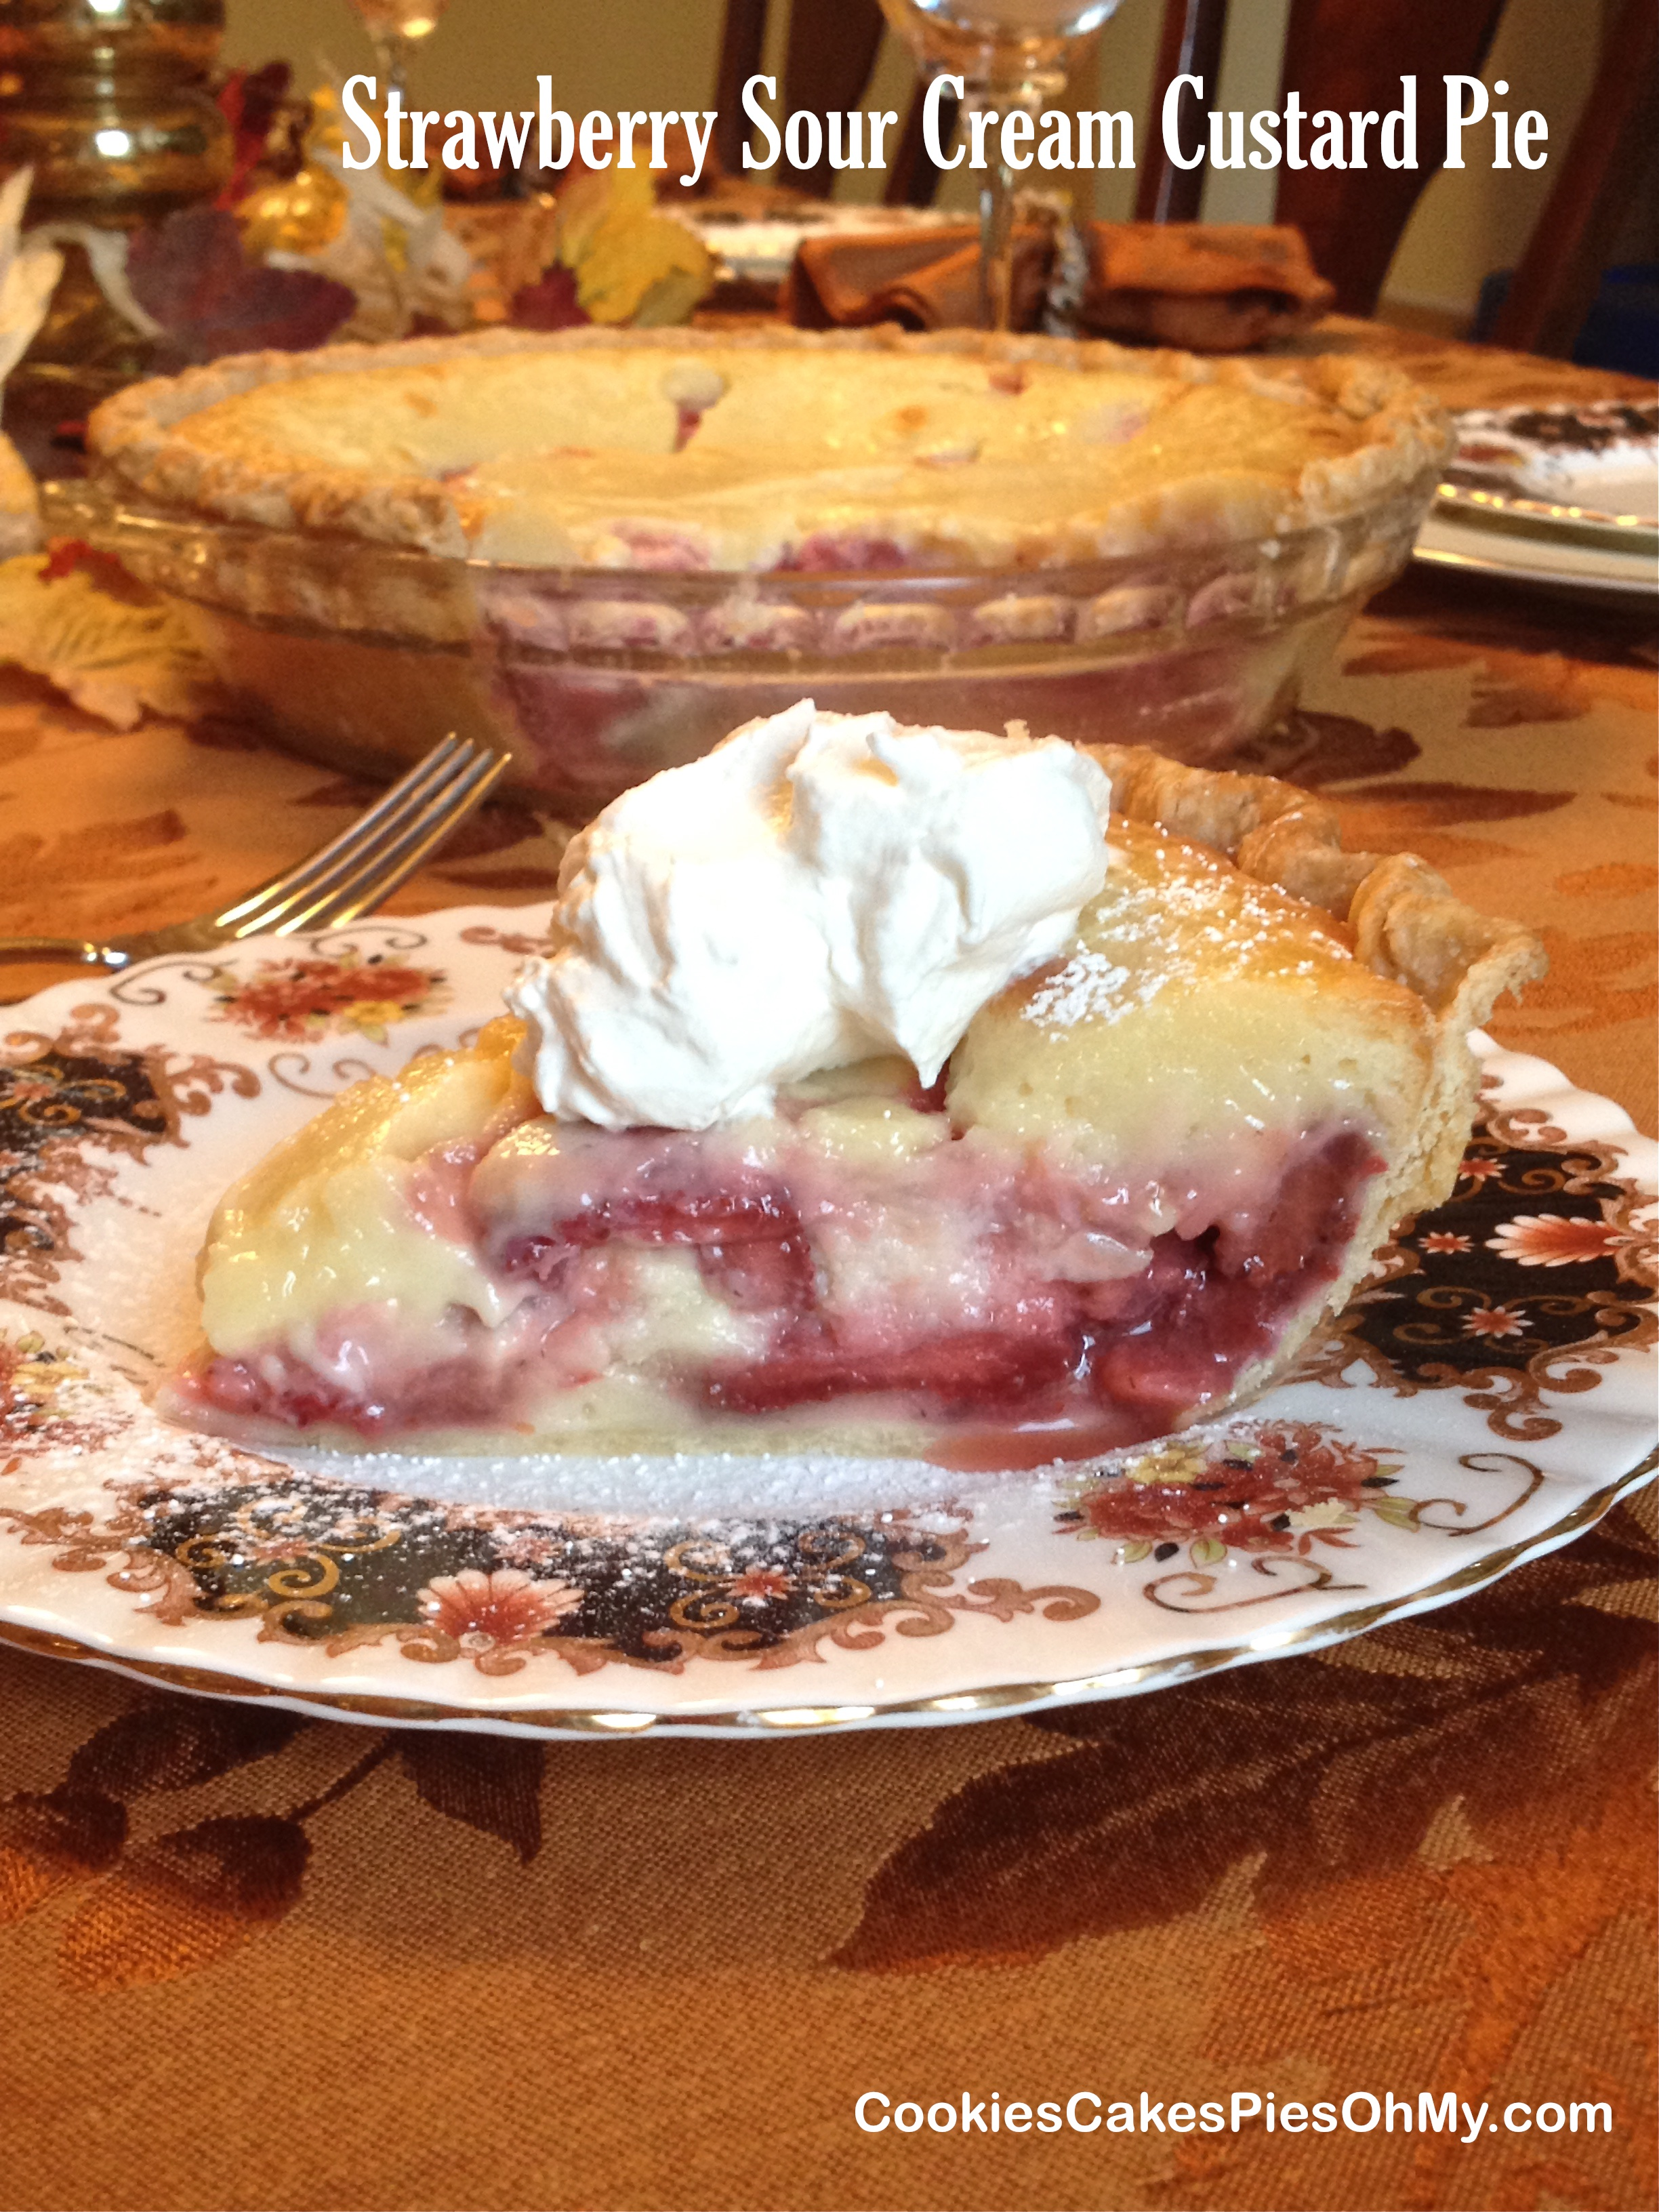 ... strawberry layer with a creamy custard layer. I love this pie